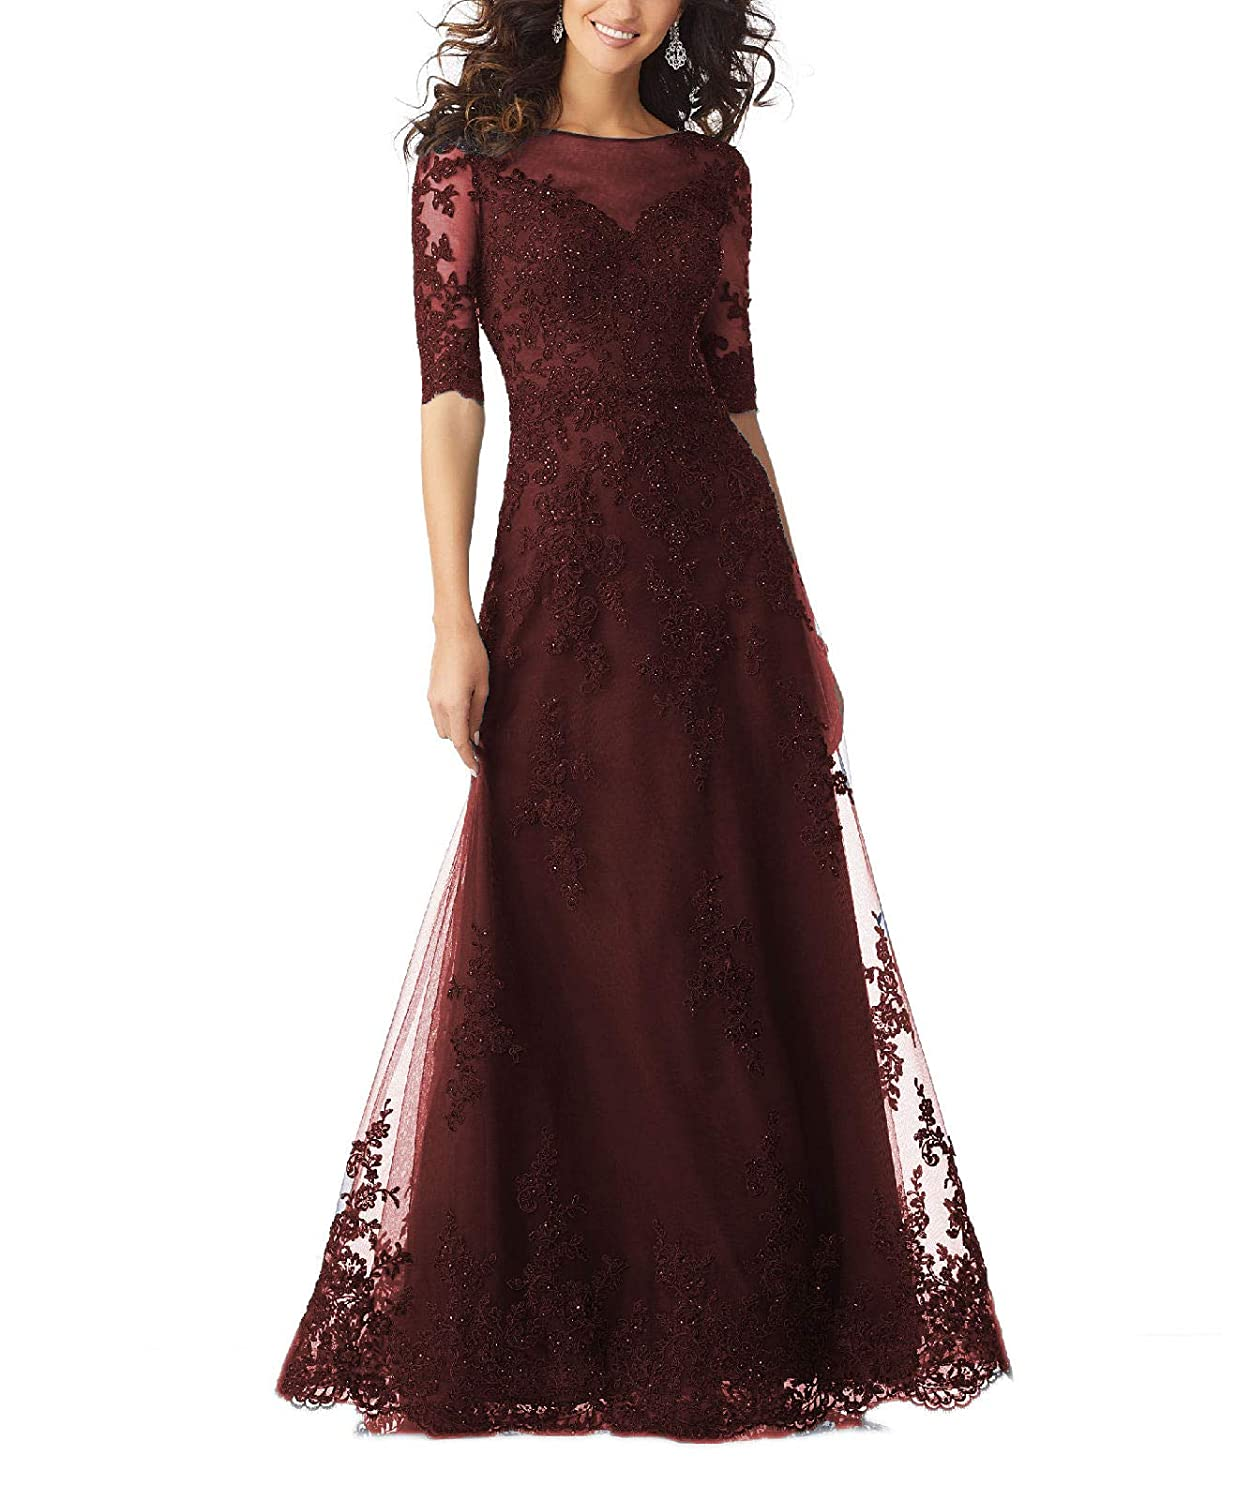 Darkred Yisha Bello Women's V Neck Lace Appliques Mother of The Bride Dress Tulle Beaded Half Sleeve Evening Formal Gowns